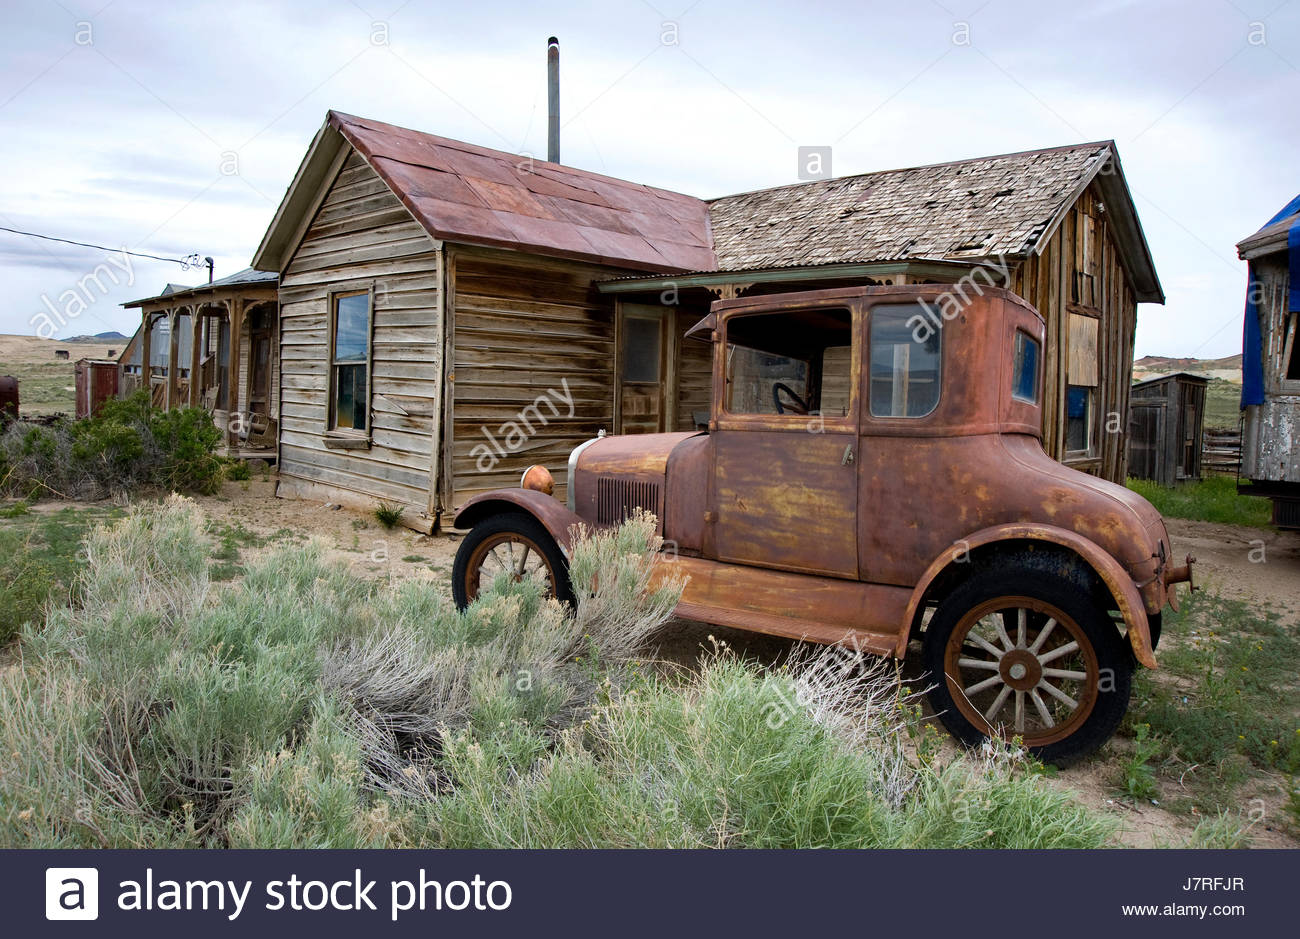 Antique car and old  abandoned building at ghost town of Goldfield, Nevada, USA - Stock Image